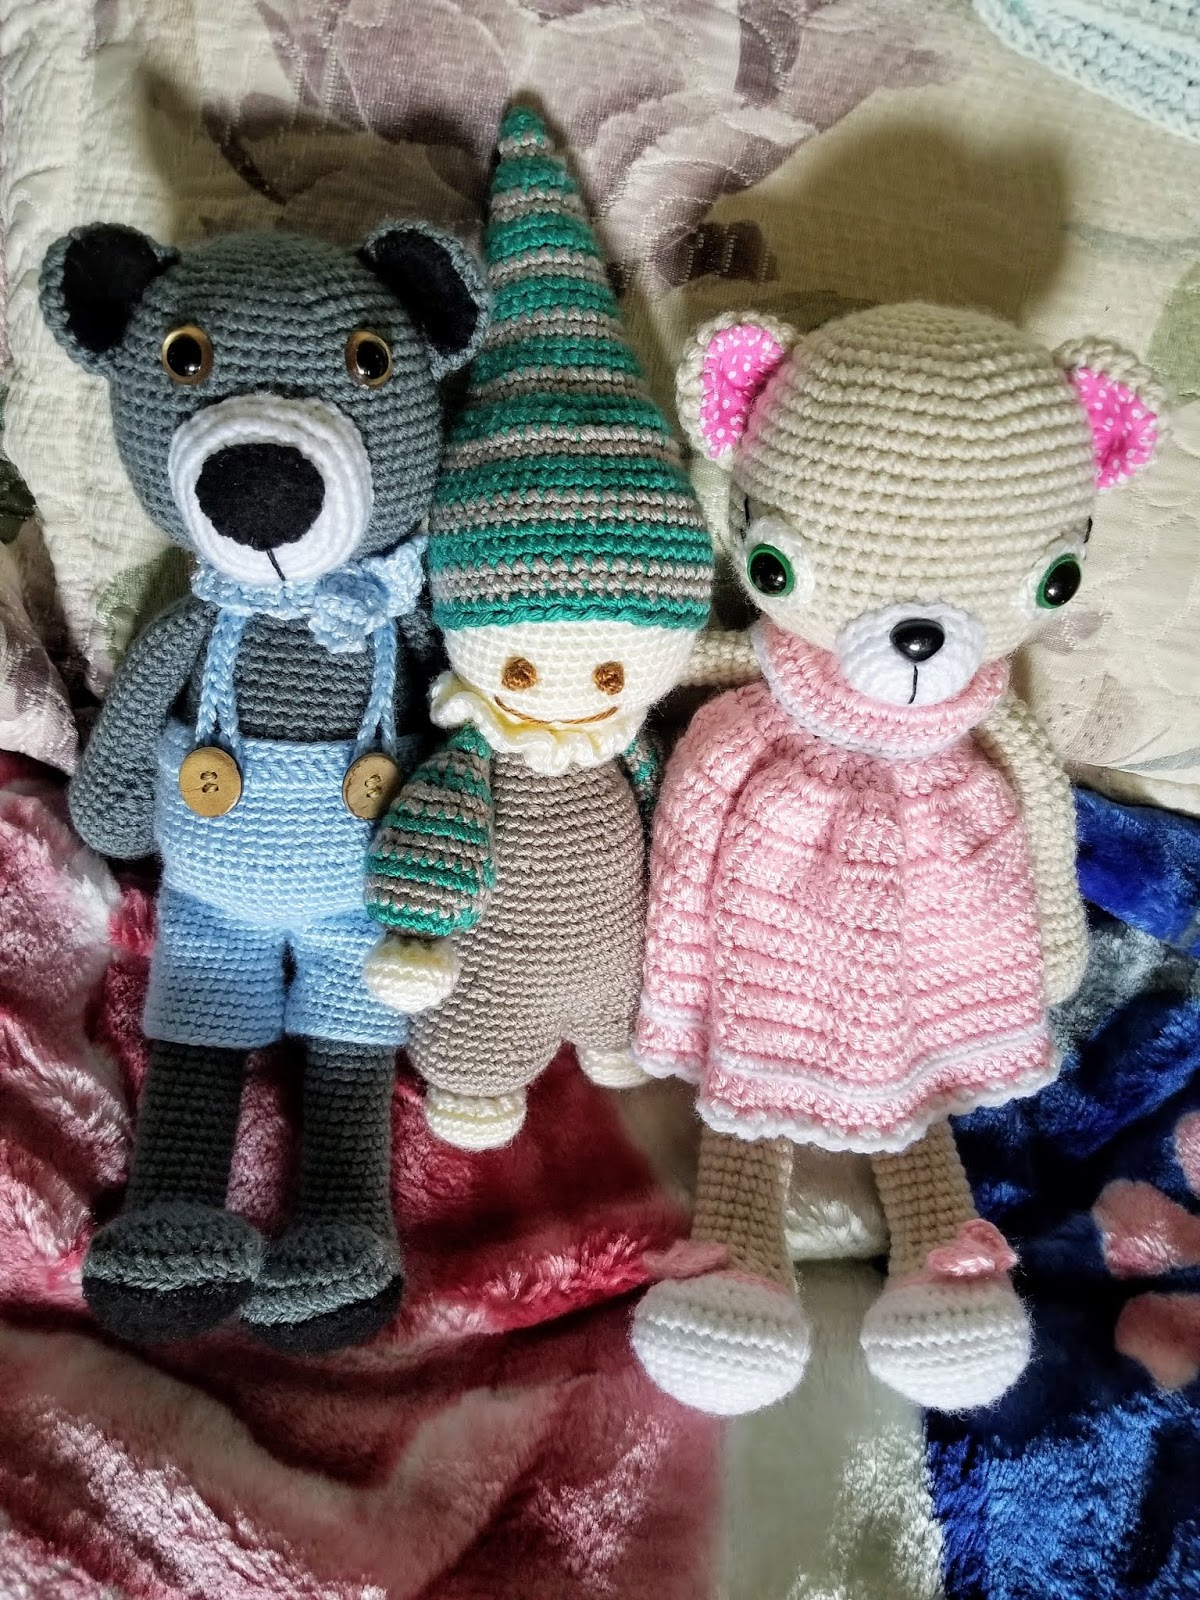 Cuddly Amigurumi Toys: 15 New Crochet Projects by Lilleliis ... | 1600x1200